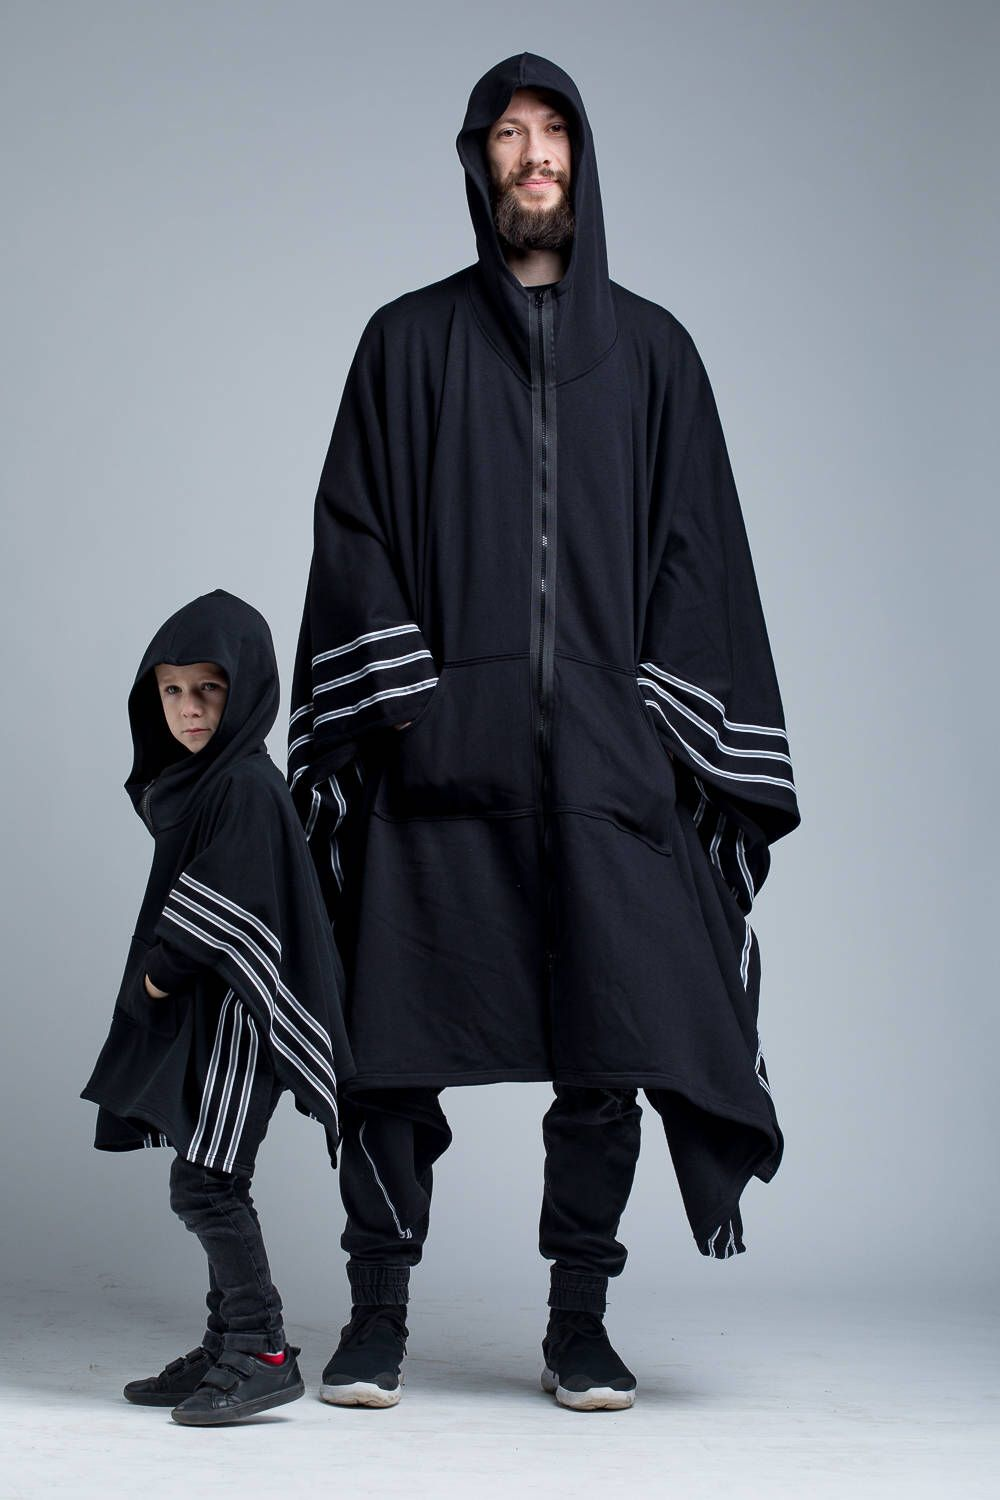 Matching ideas for family outfit with this Kids Poncho \ Black Poncho Child Kimono Coats Zipper Jacket Hooded Jacket Black Coat Black Kids Clothes Streetwear Clothing